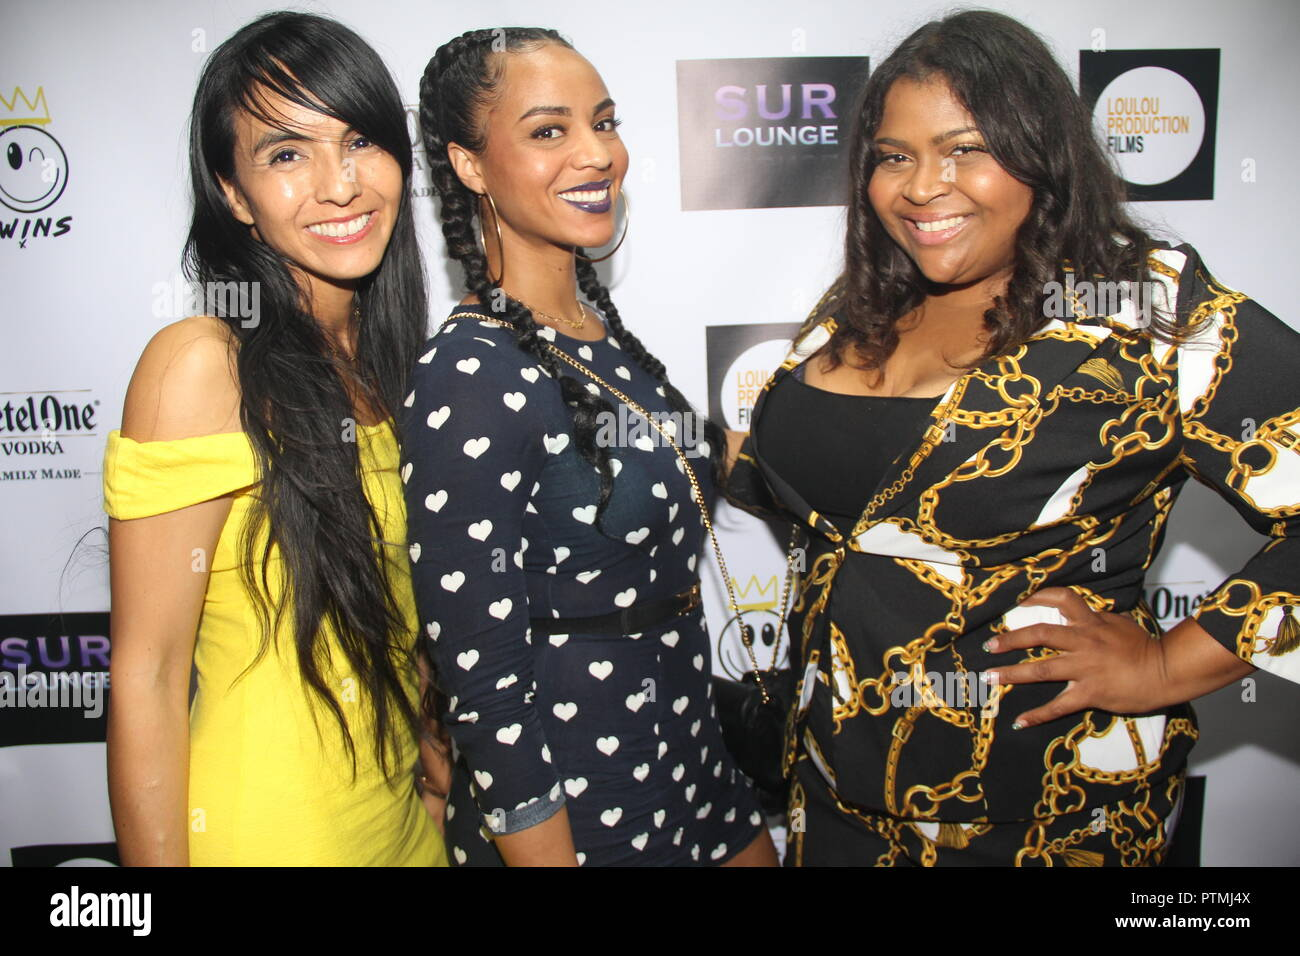 Hollywood, California, USA. 7th Oct, 2018. I16012CHW.Sony Music VIP American Music Awards Red Carpet Brunch Party at SUR West Hollywood Hosted By The EC Twins .Sur Restaurant, West Hollywood, California, USA .10/07/2018 .TRACEY BUCKNER AND GUESTS ATTEND SUR LOUNGE-SUR BRUNCH AMA PRE PARTY HOSTED BY THE EC TWINS . © Clinton H.Wallace/Photomundo International/ Photos Inc Credit: Clinton Wallace/Globe Photos/ZUMA Wire/Alamy Live News - Stock Image